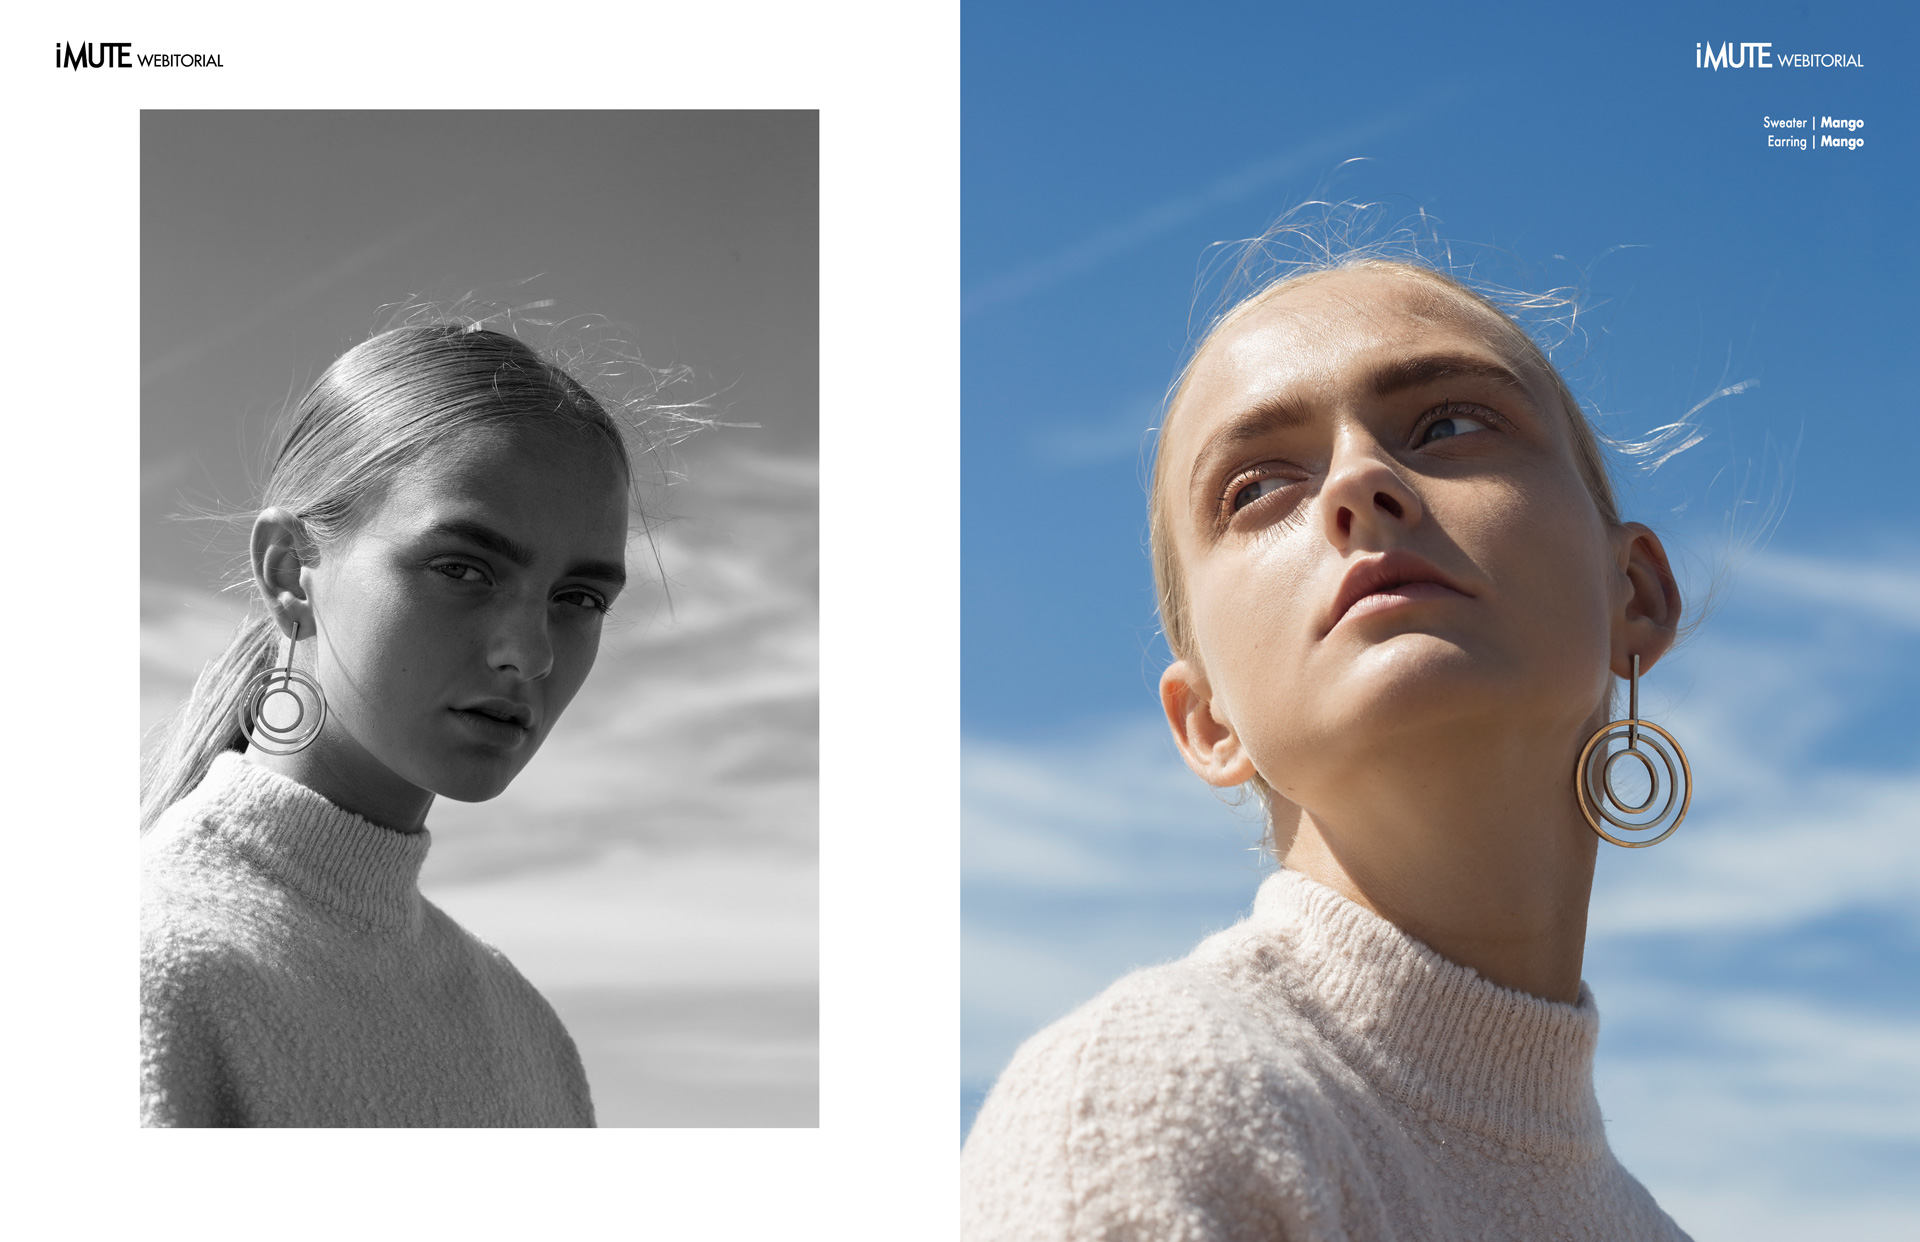 Blue Sky webitorial for iMute Magazine Photographer | Klaudia Molenda Model | Elynne Keizer @ De Boekers Stylist | Willeke Elisabeth Makeup & Hair | Fatima Ribeiro